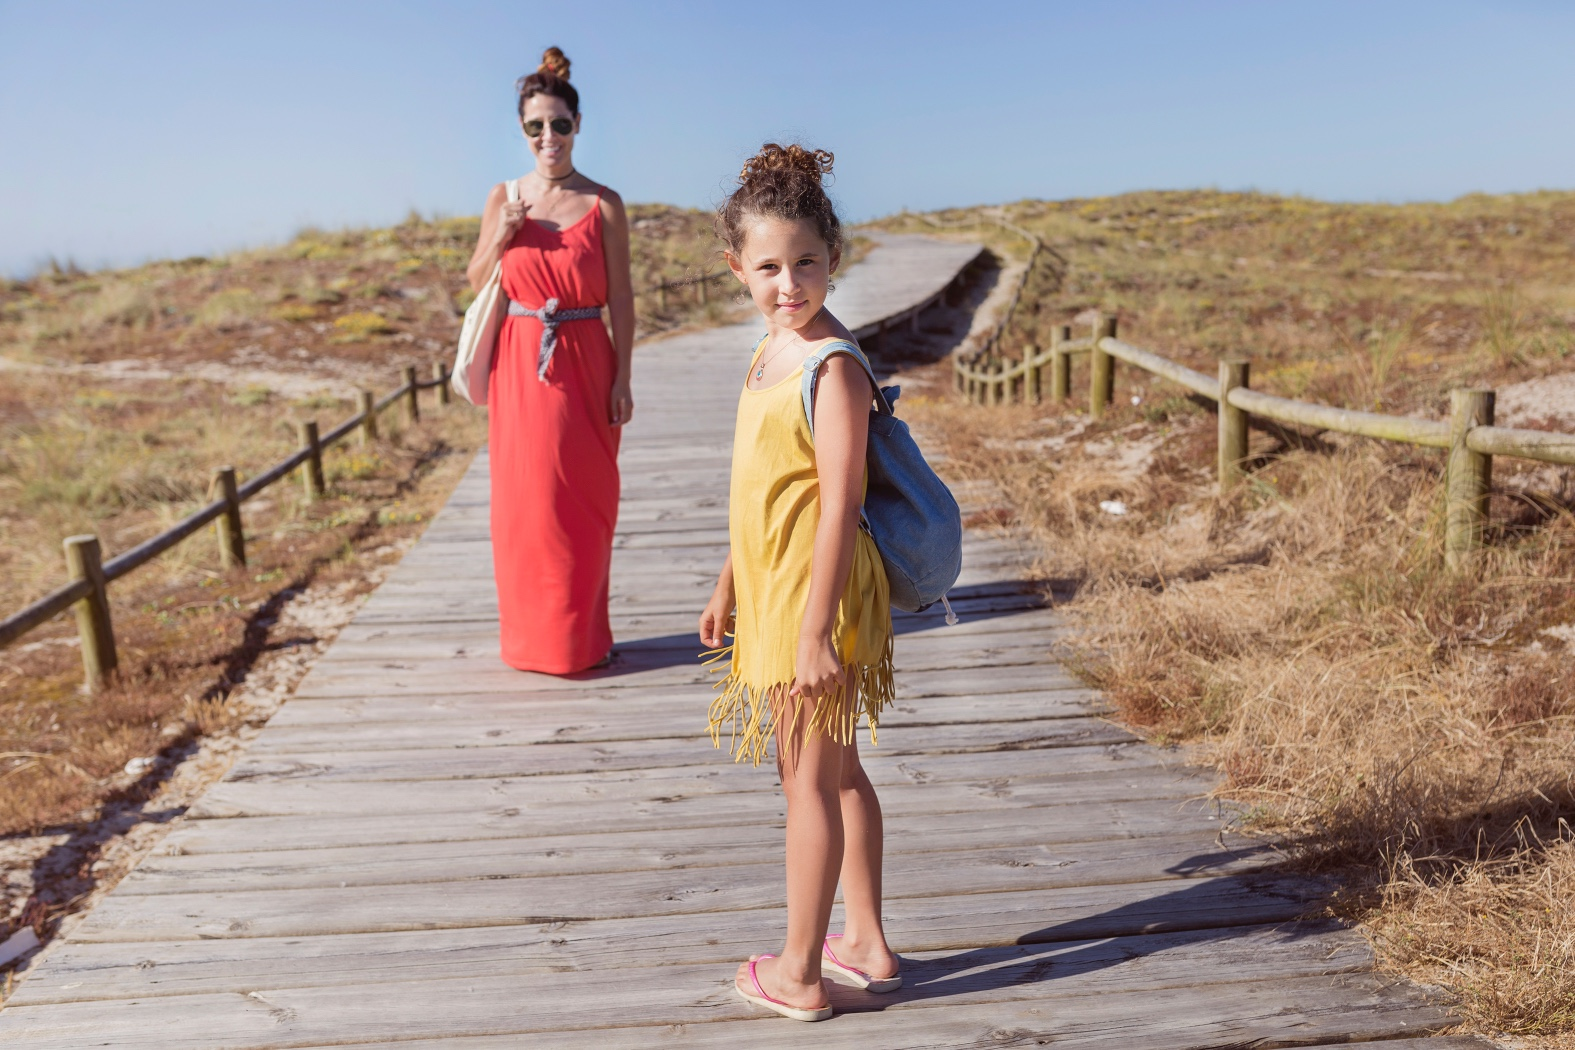 barrañán -coruña - descalzaporelparque - jimena and me - madre e hija - playa - pull and bear - rayban -rojo -summer - zara-costa da morte Club -surf-playa-barrañan-arteixo